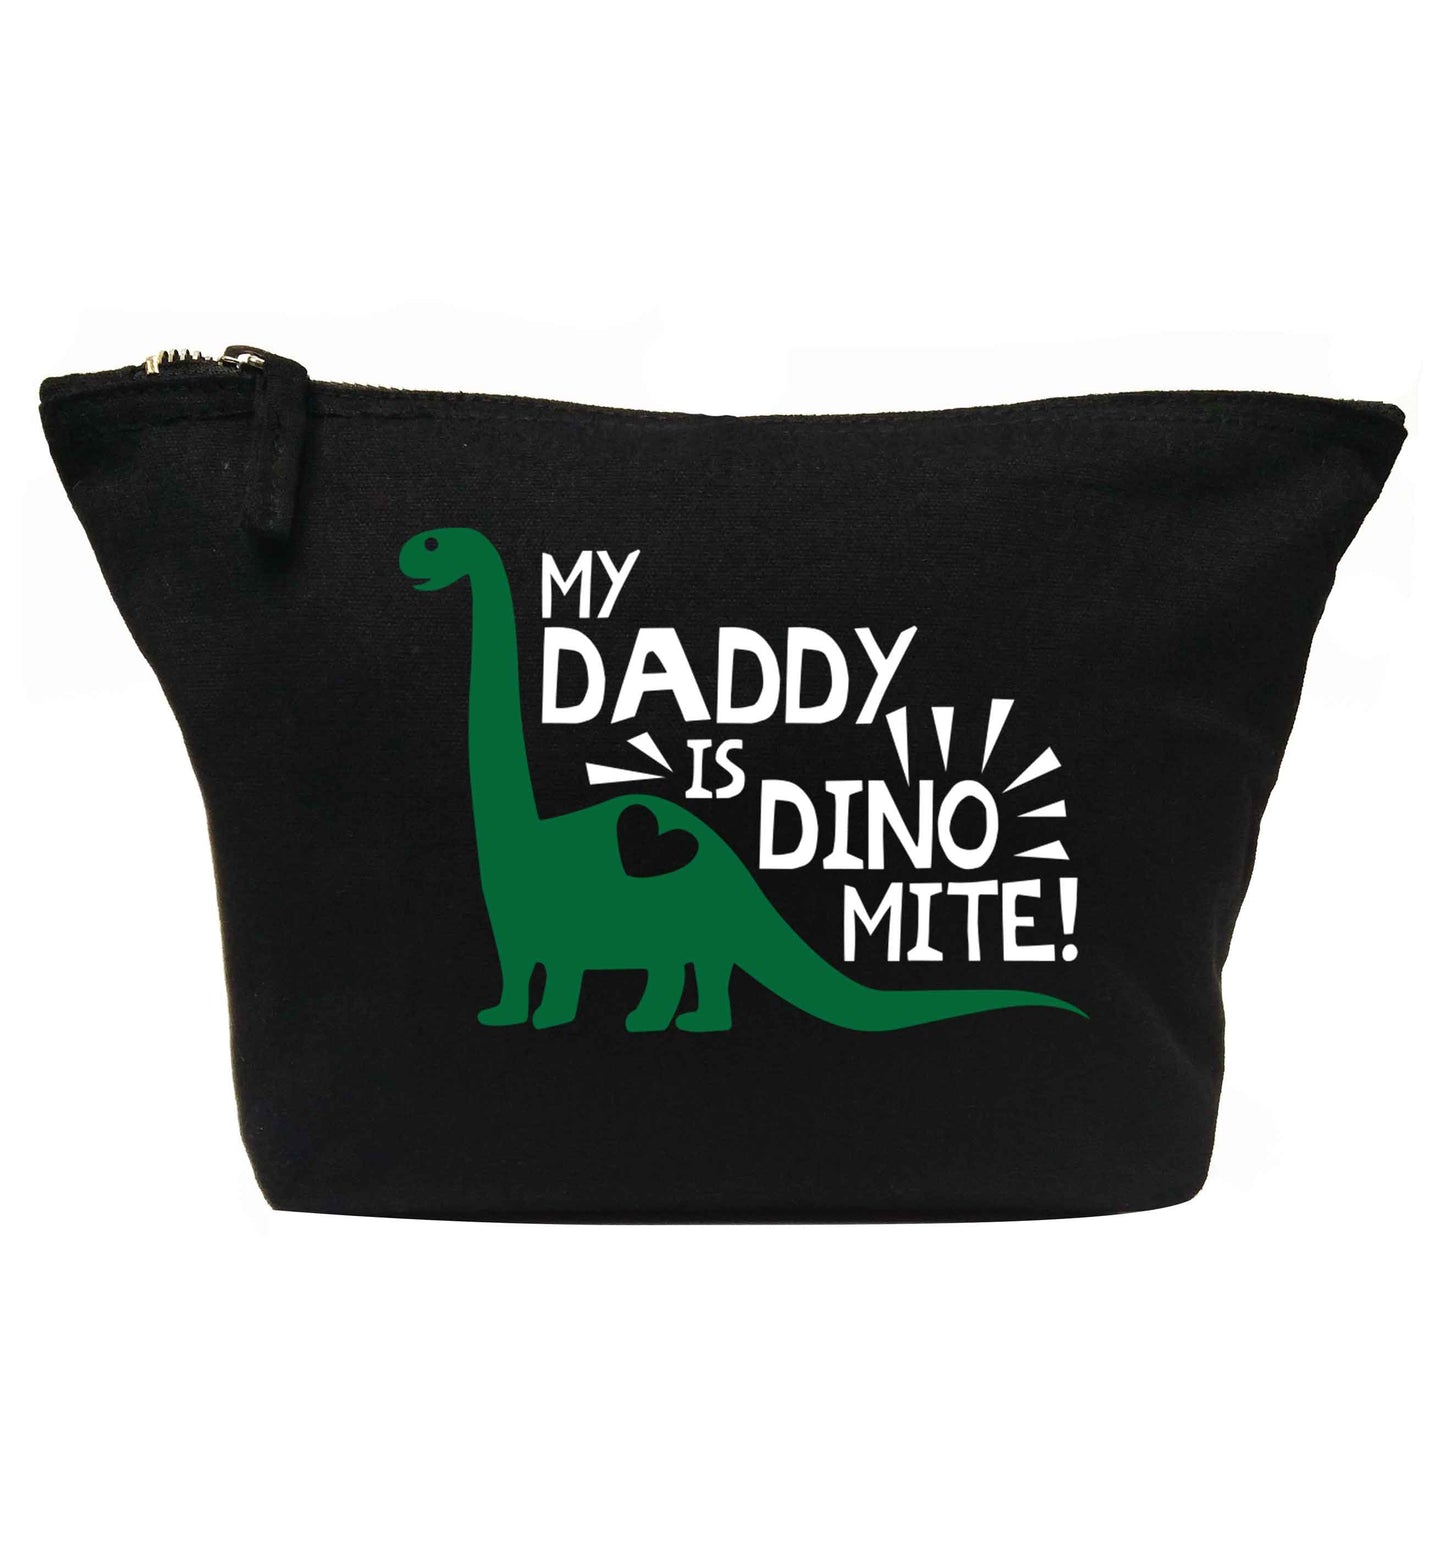 My daddy is dinomite! | makeup / wash bag